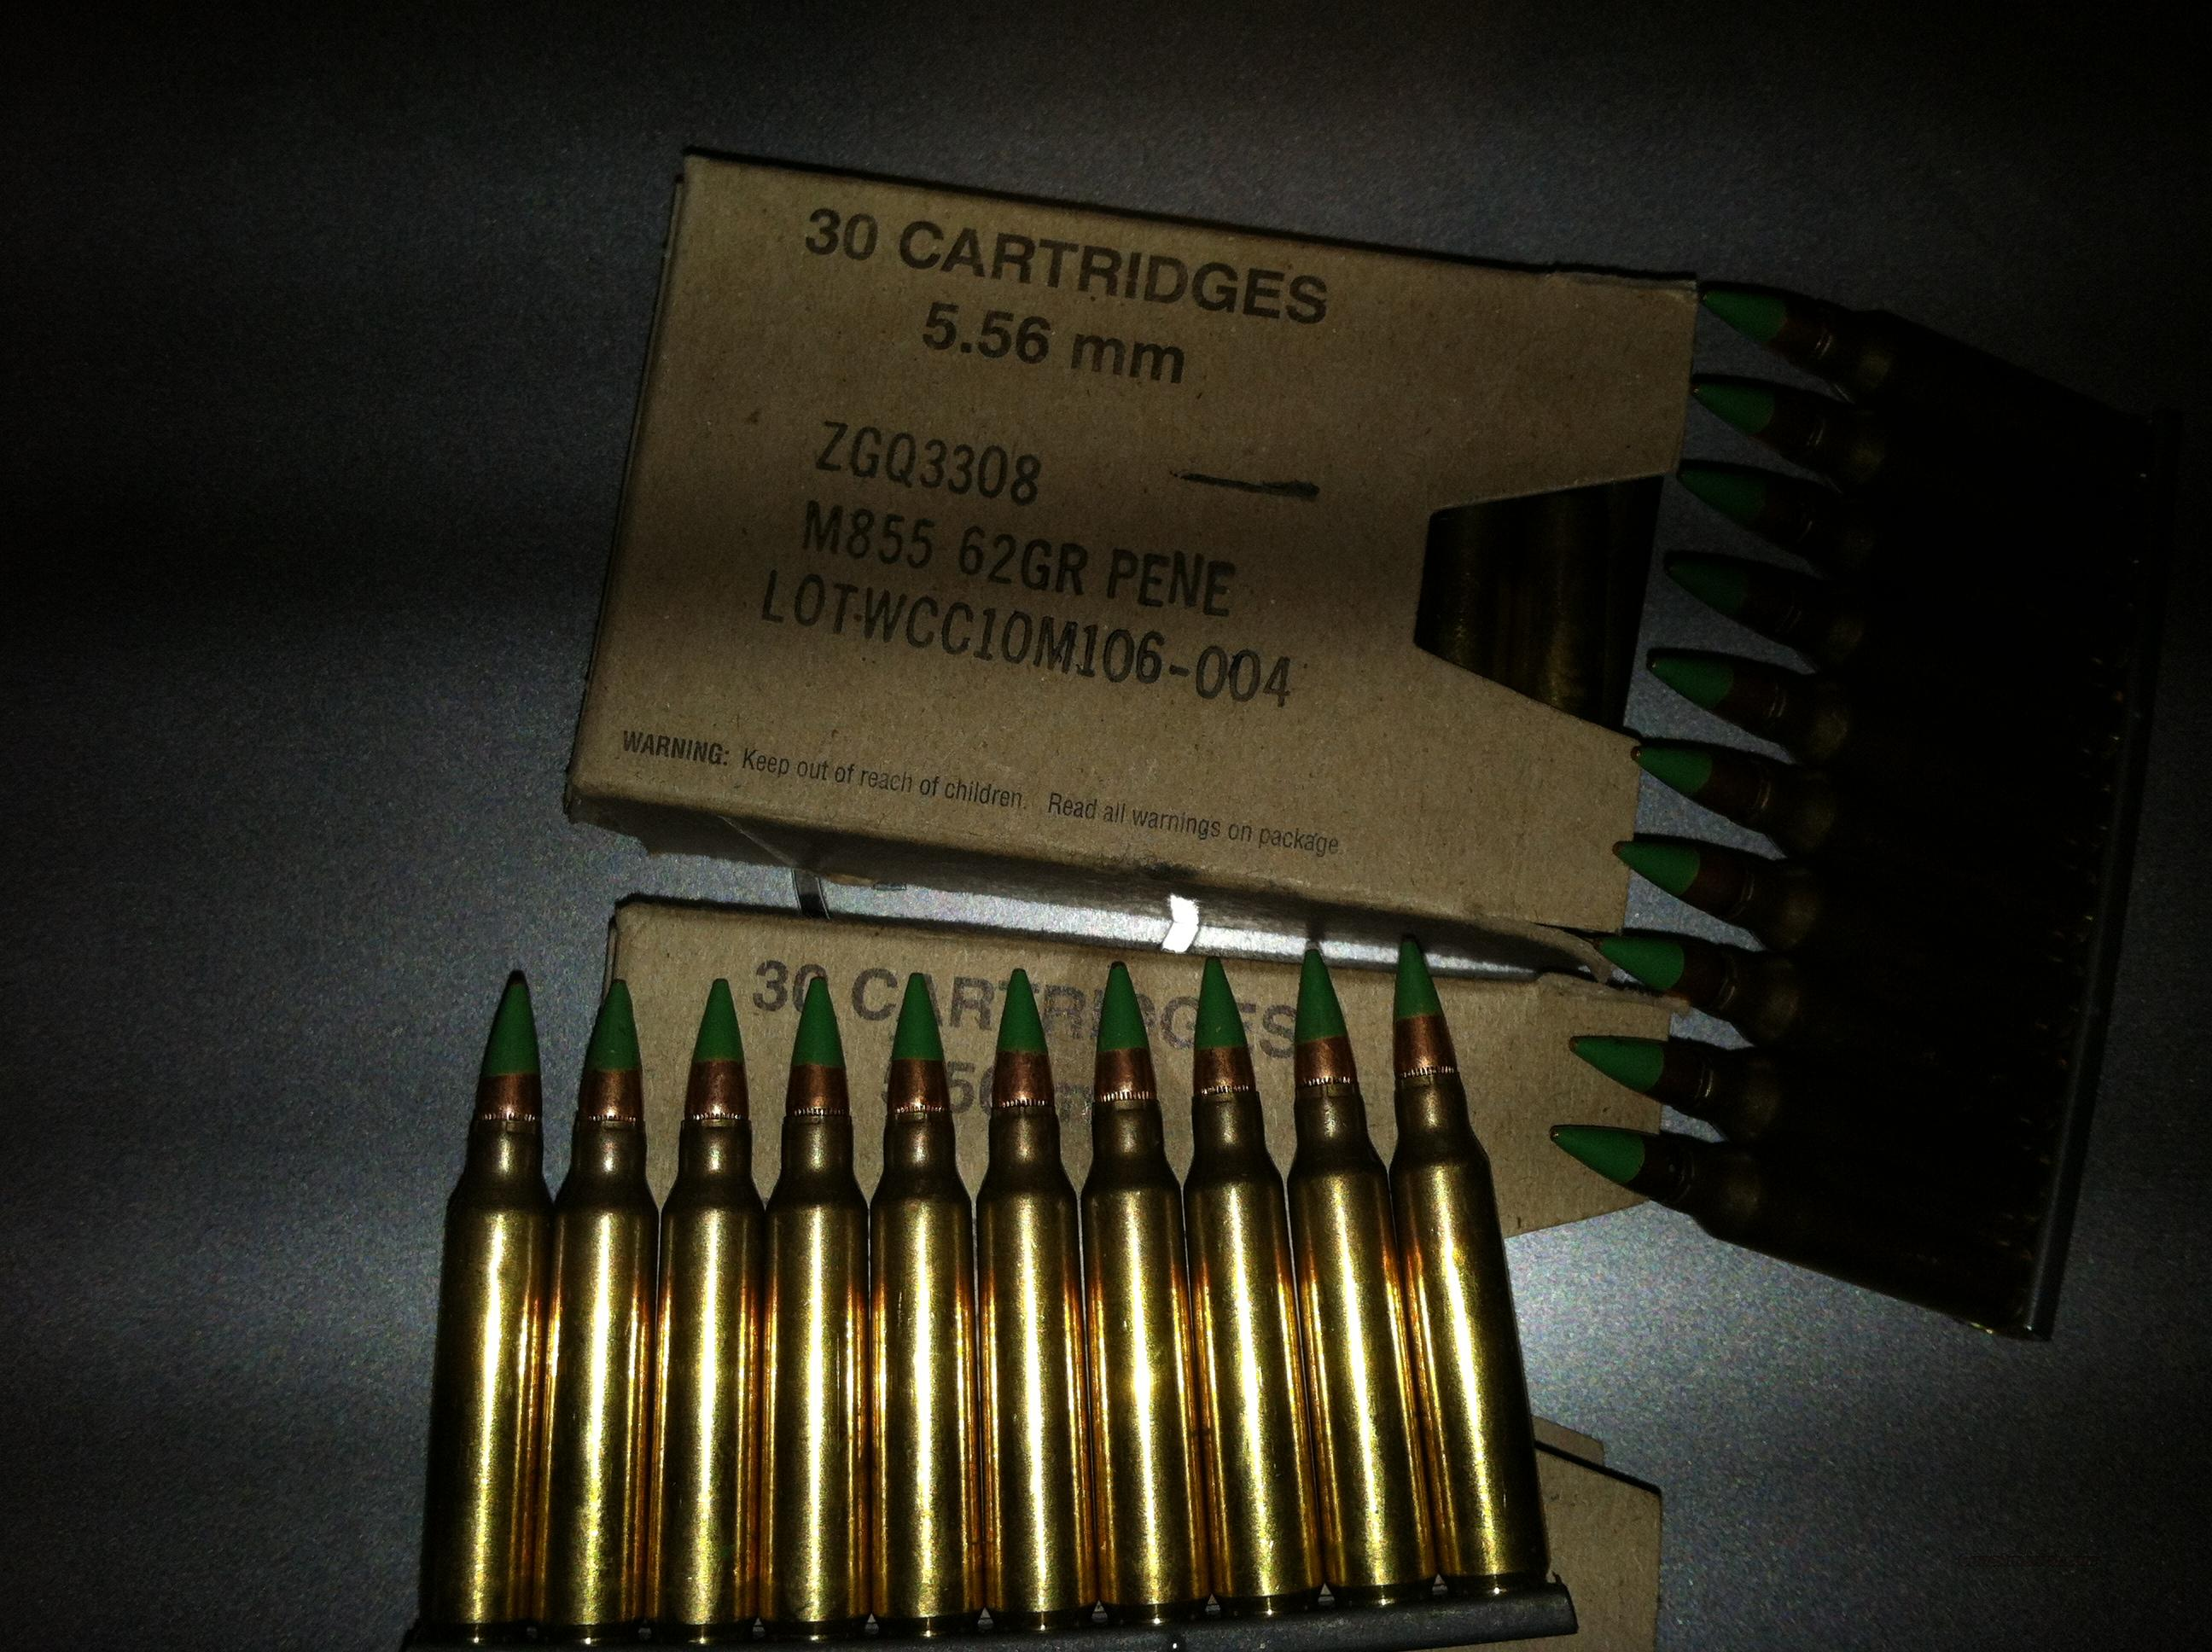 5.56 62 Gr SS109 M855 on stripper clips  Non-Guns > Ammunition